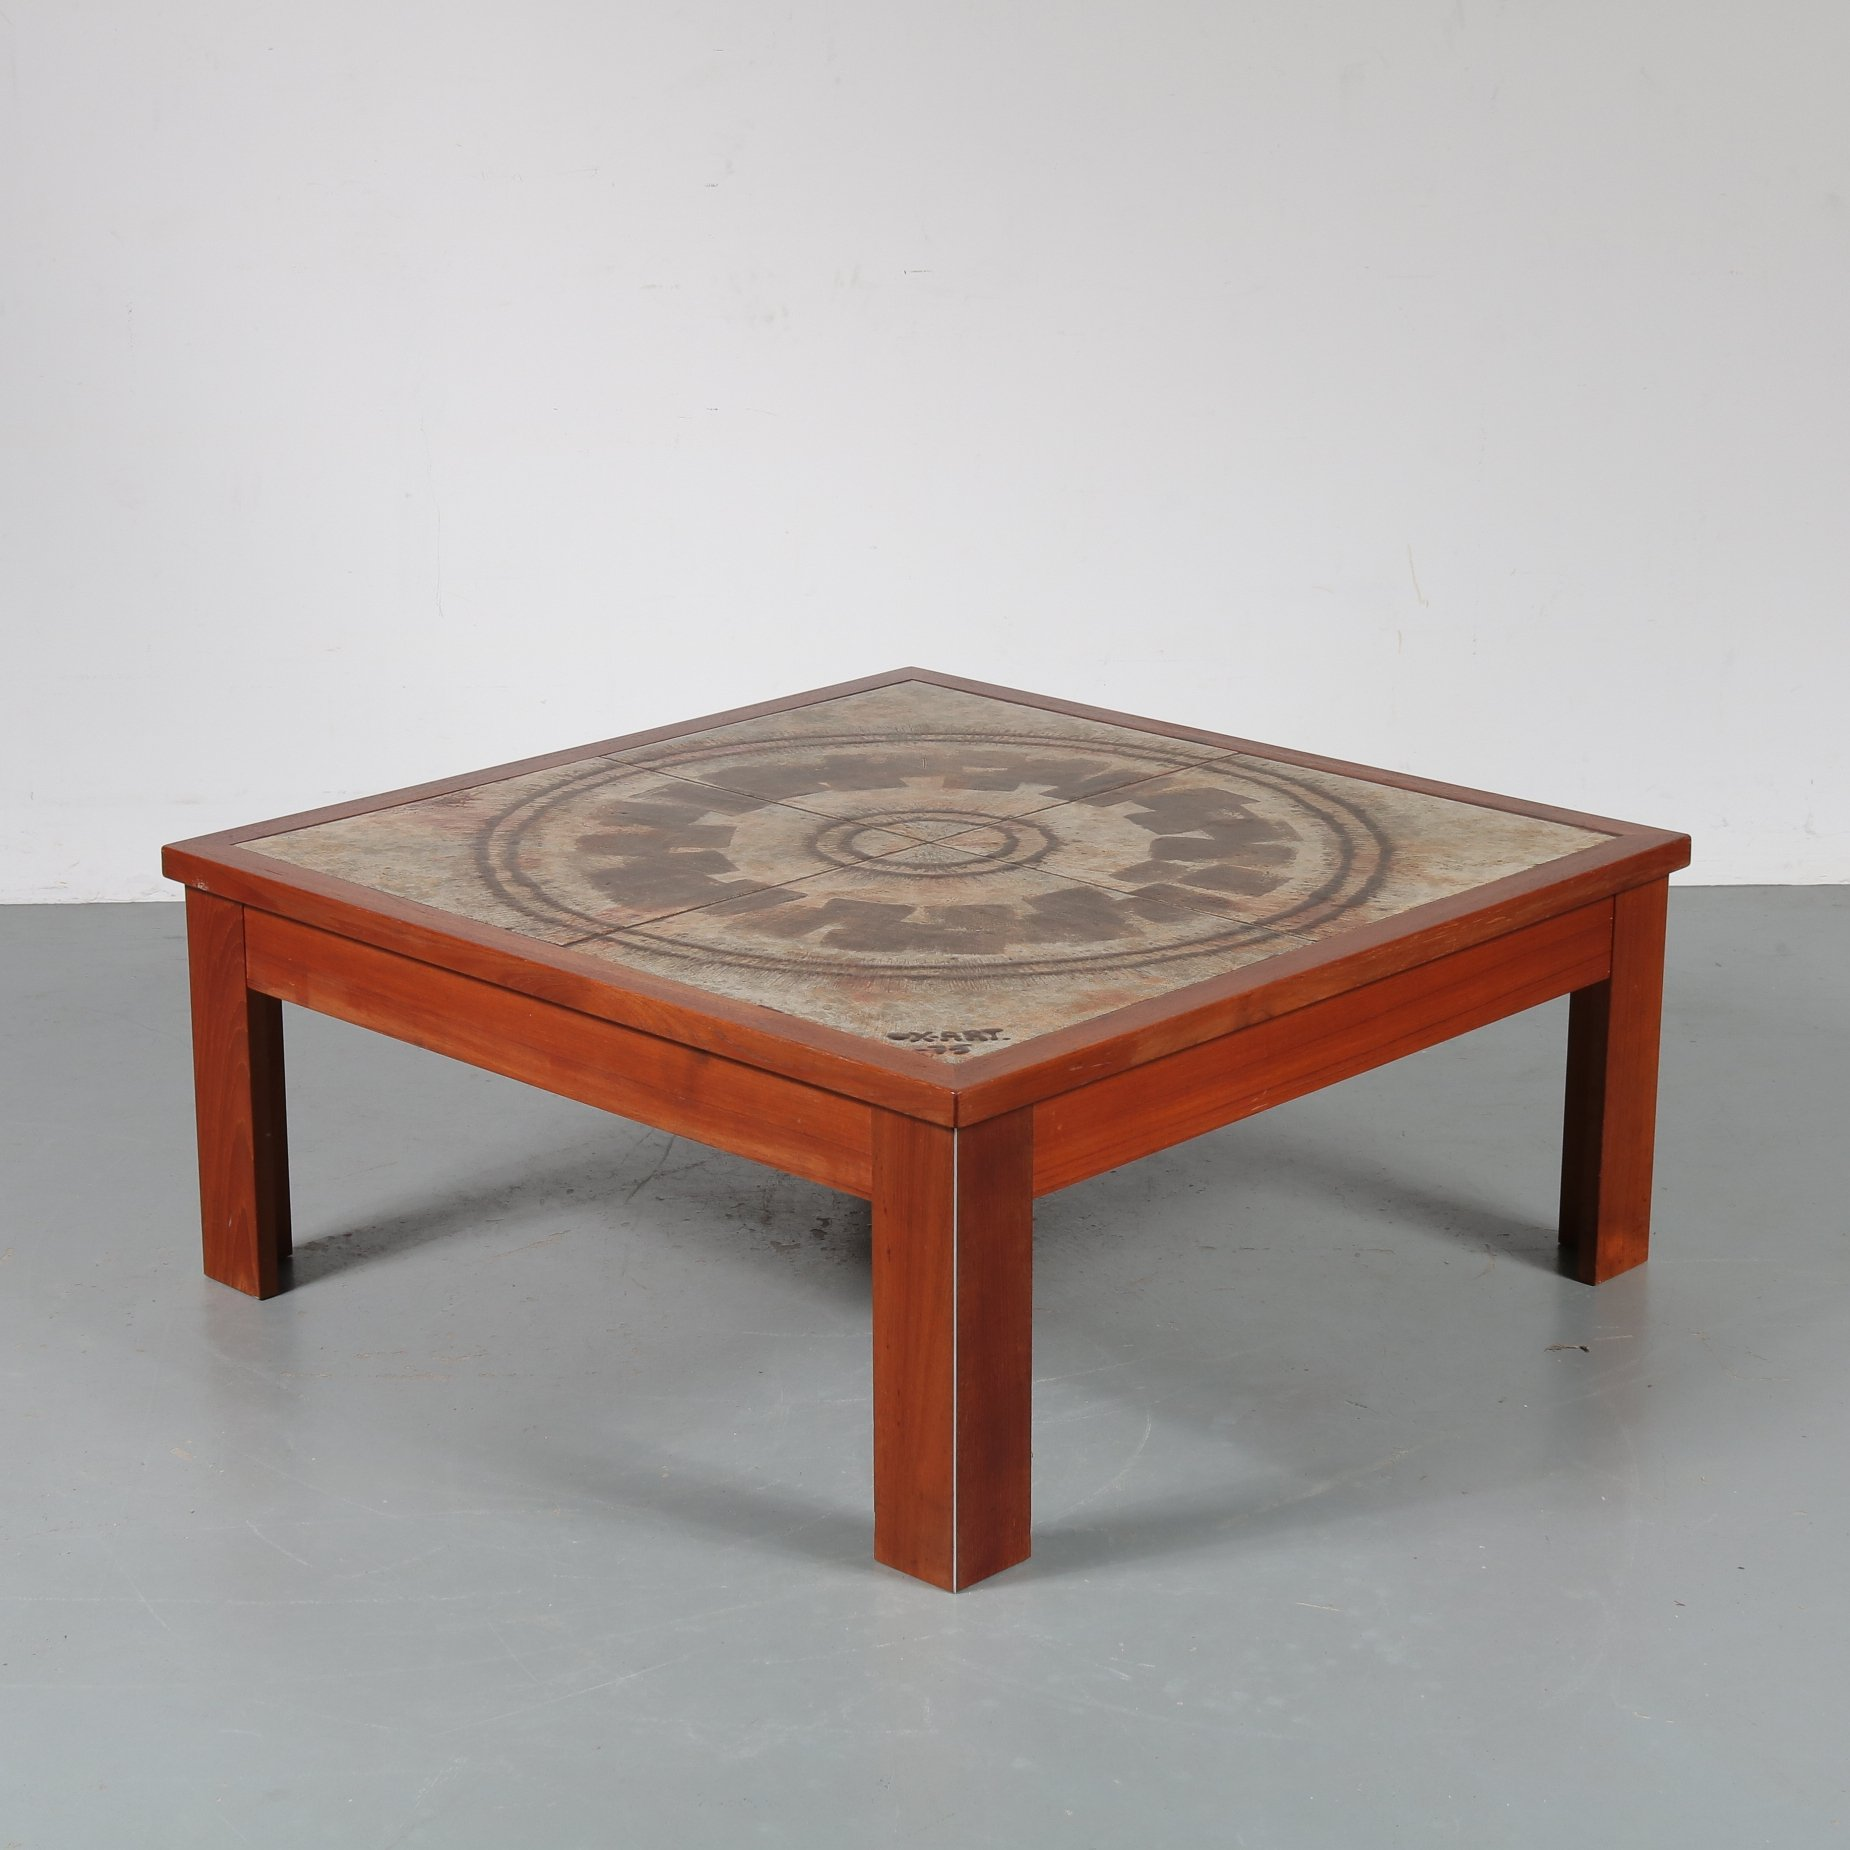 ceramic top coffee table by ox art denmark 1970s